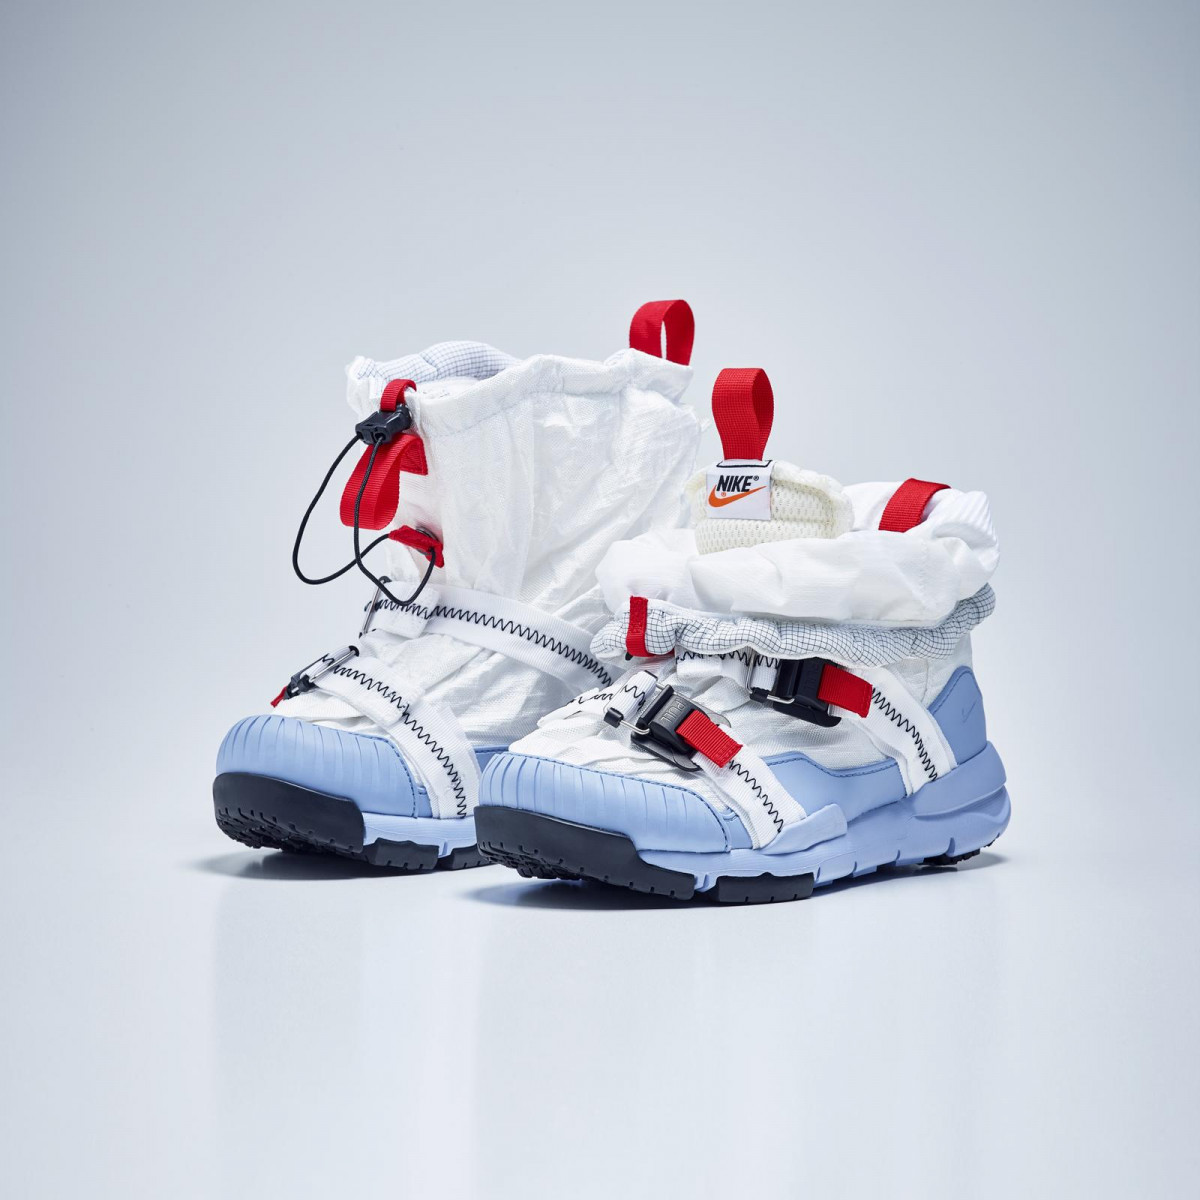 tom-sachs-nike-mars-yard-over-shoe-release-date-price-product1-1200x1200.jpg